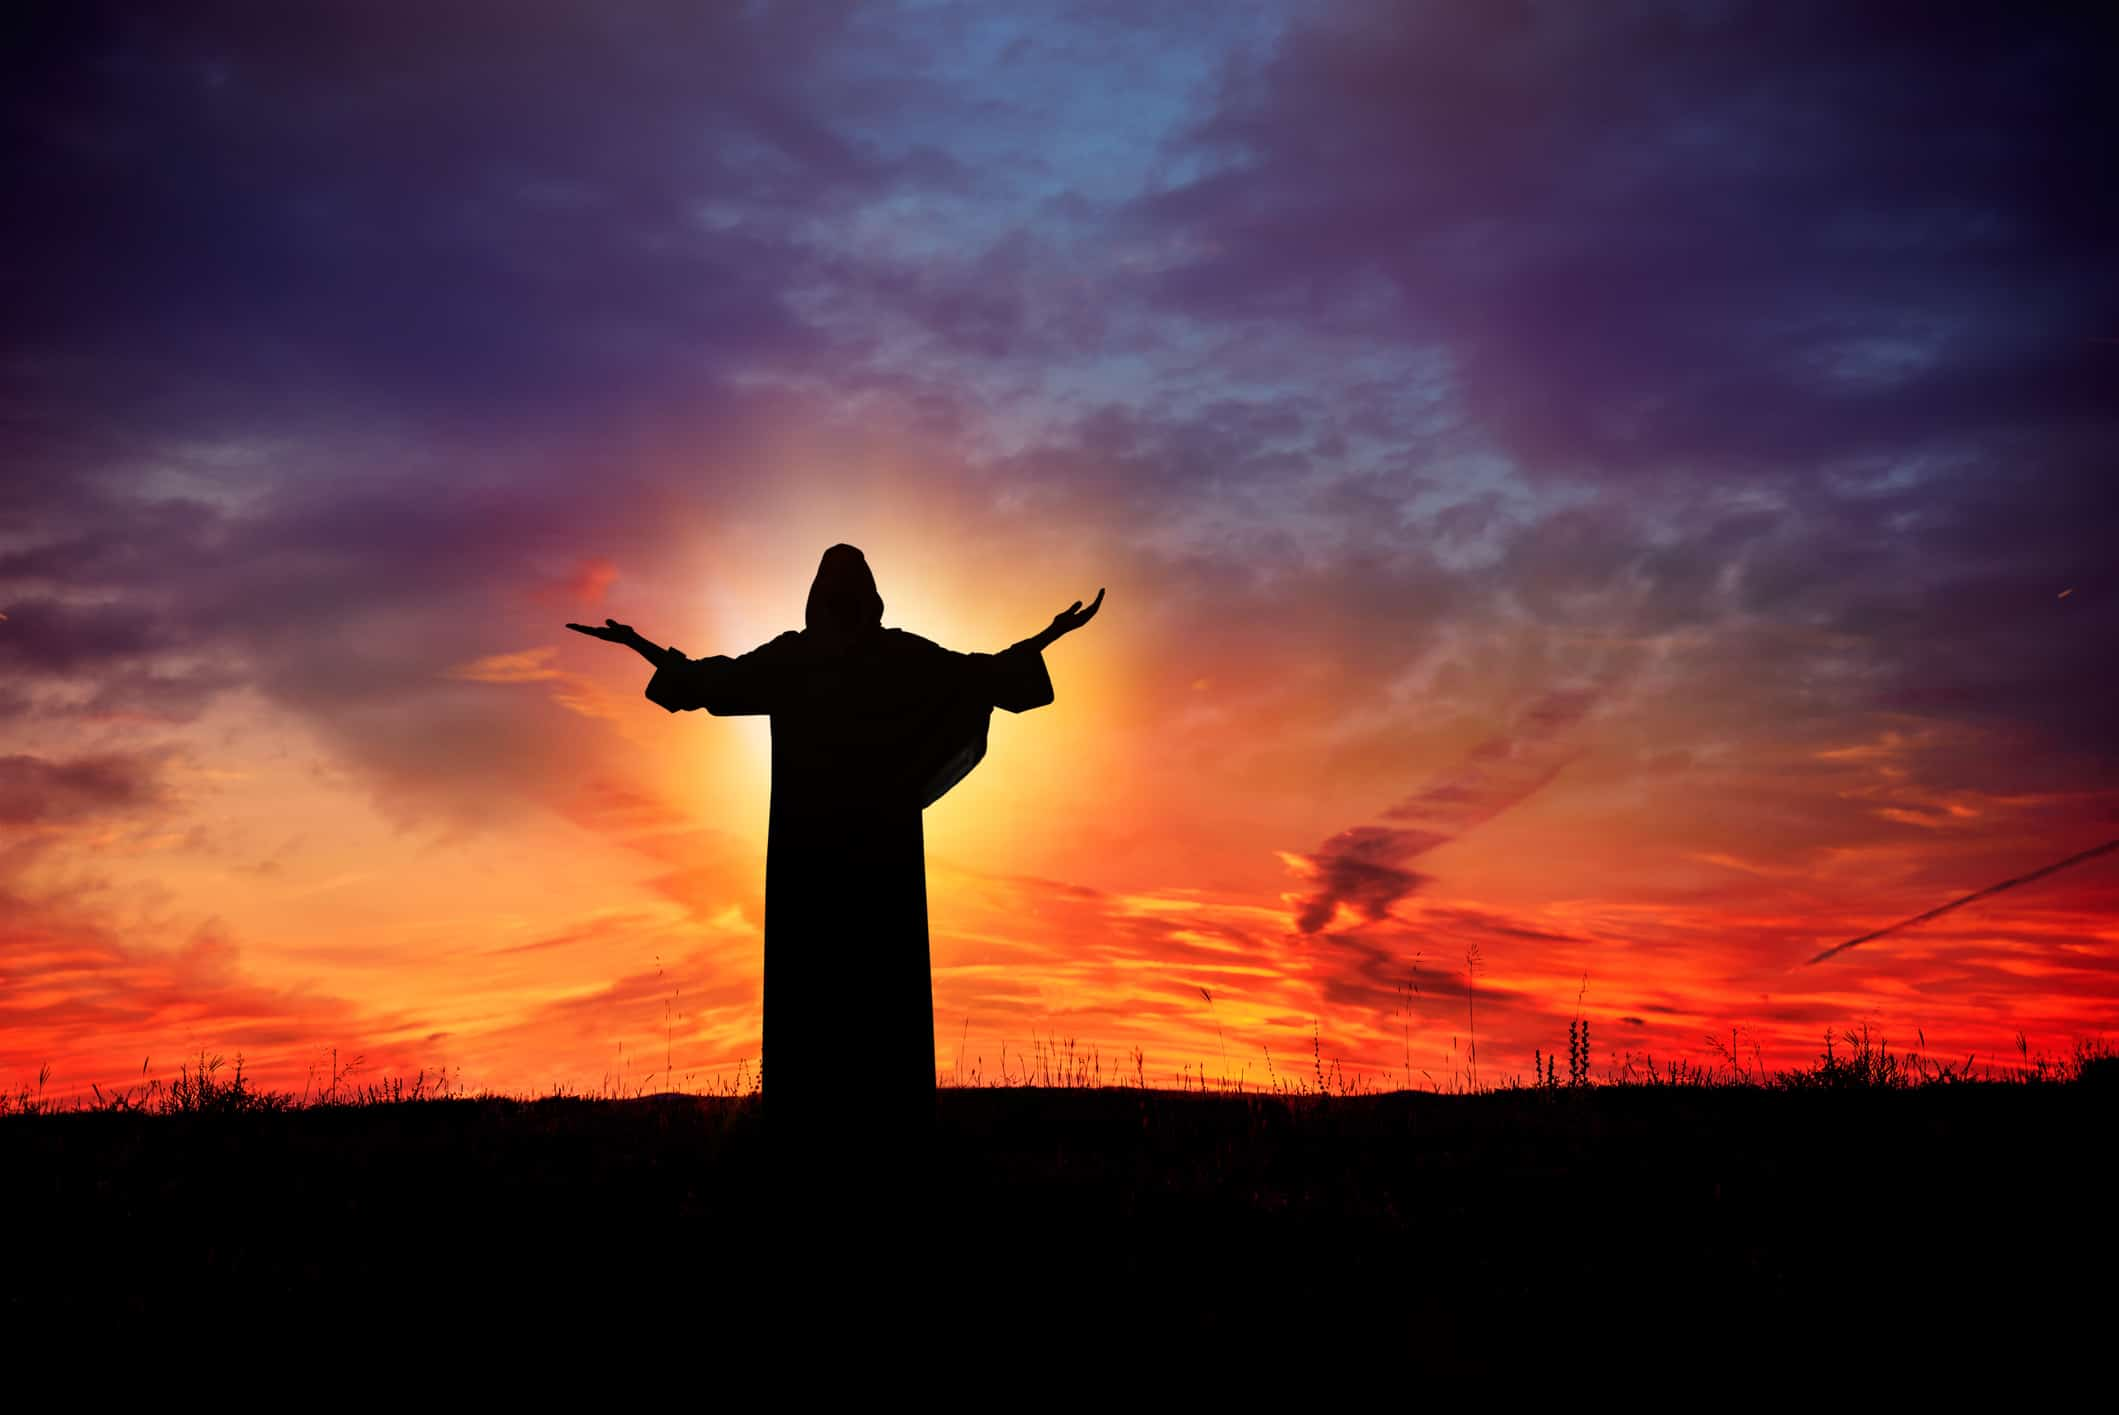 Jesus praying at sunset